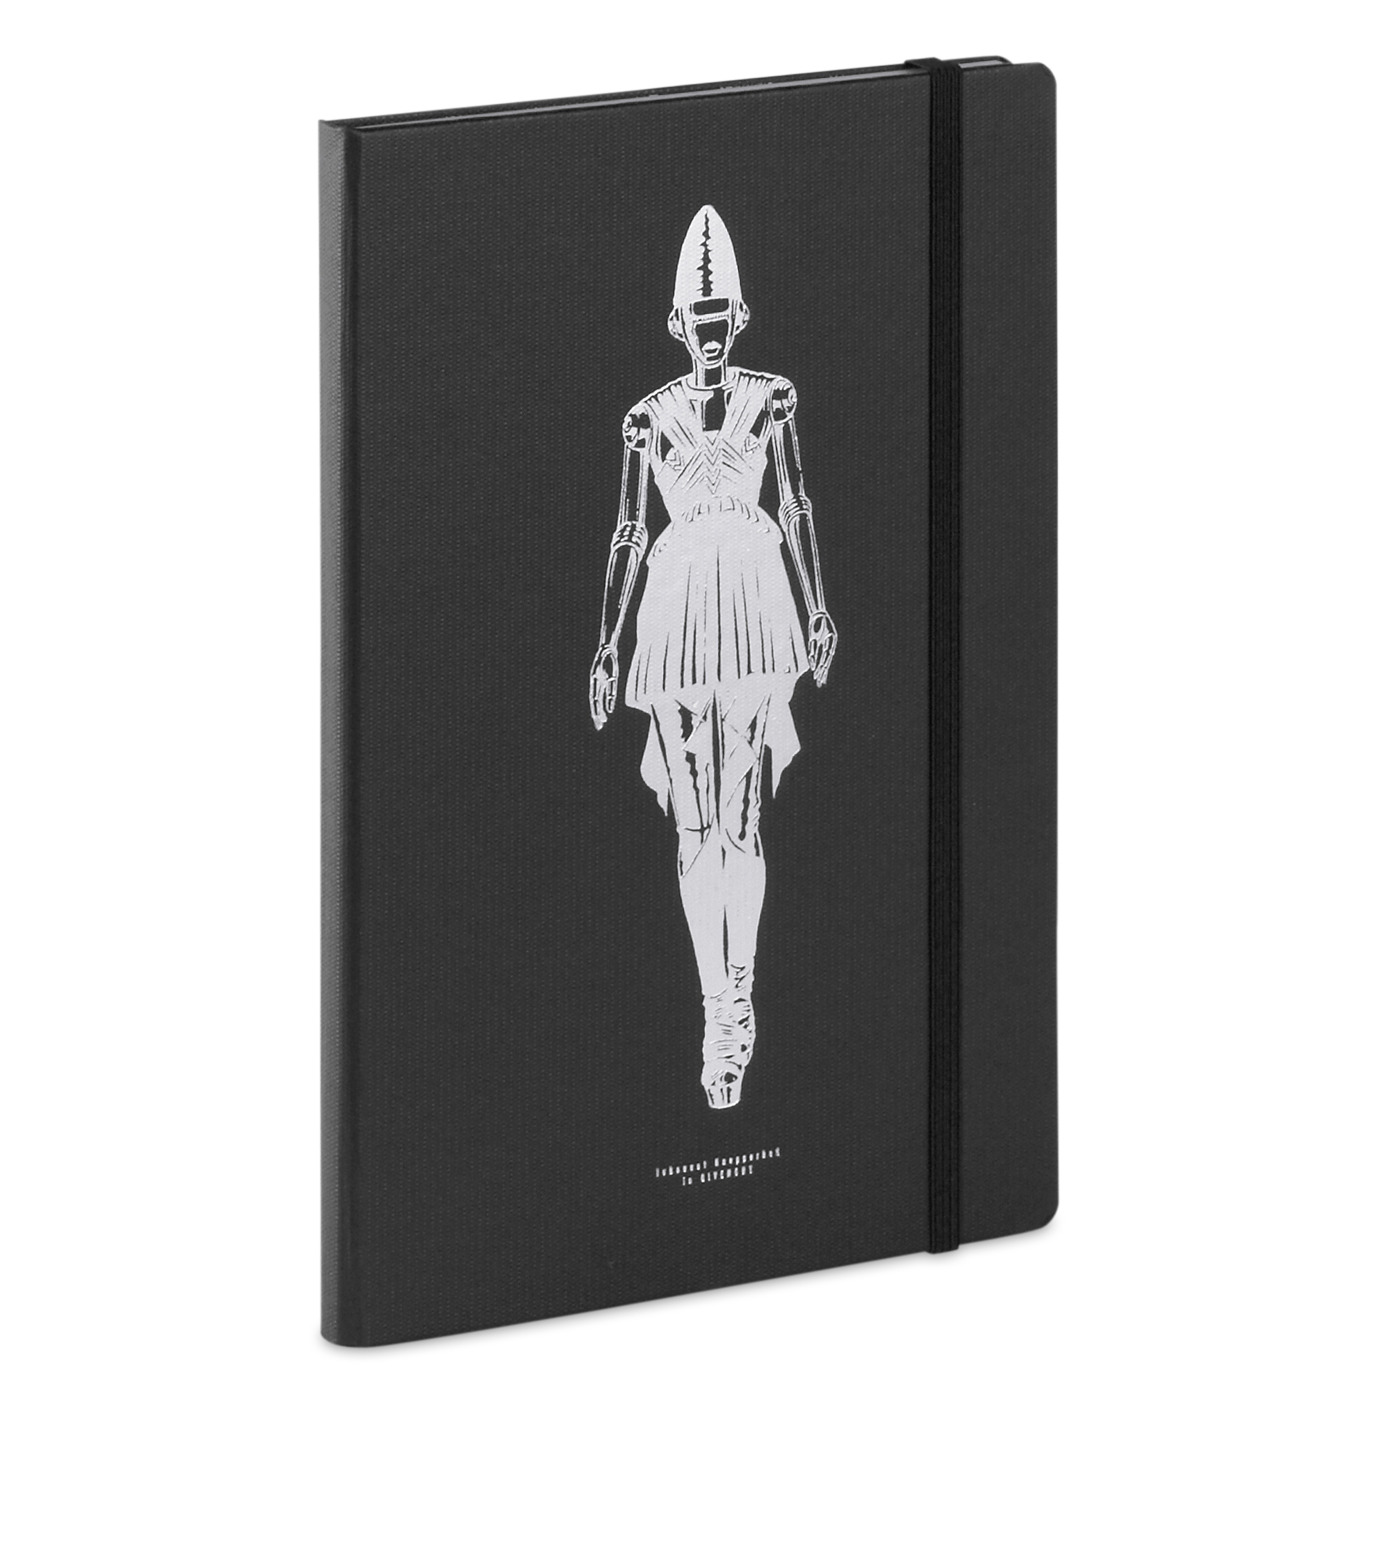 Fashematical(ファシェマティカル)のNote book-NONE(OTHER-GOODS/OTHER-GOODS)-Note-Givenchy 拡大詳細画像2